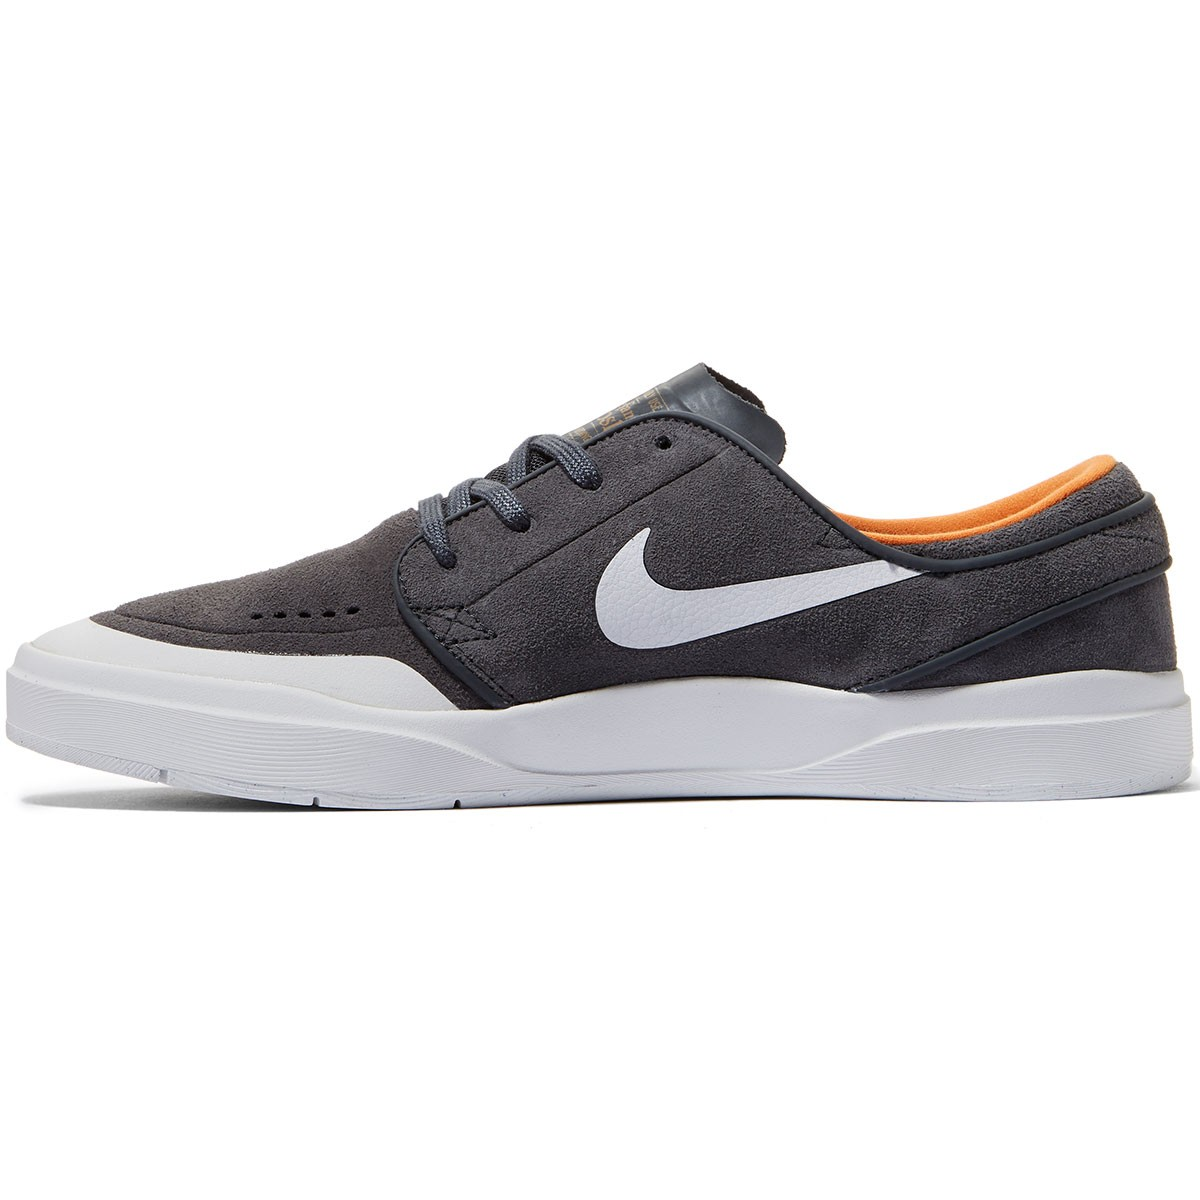 promo code fada0 7ca42 Nike SB Stefan Janoski Hyperfeel XT Shoes - Anthracite White Summit White  Clay Orange